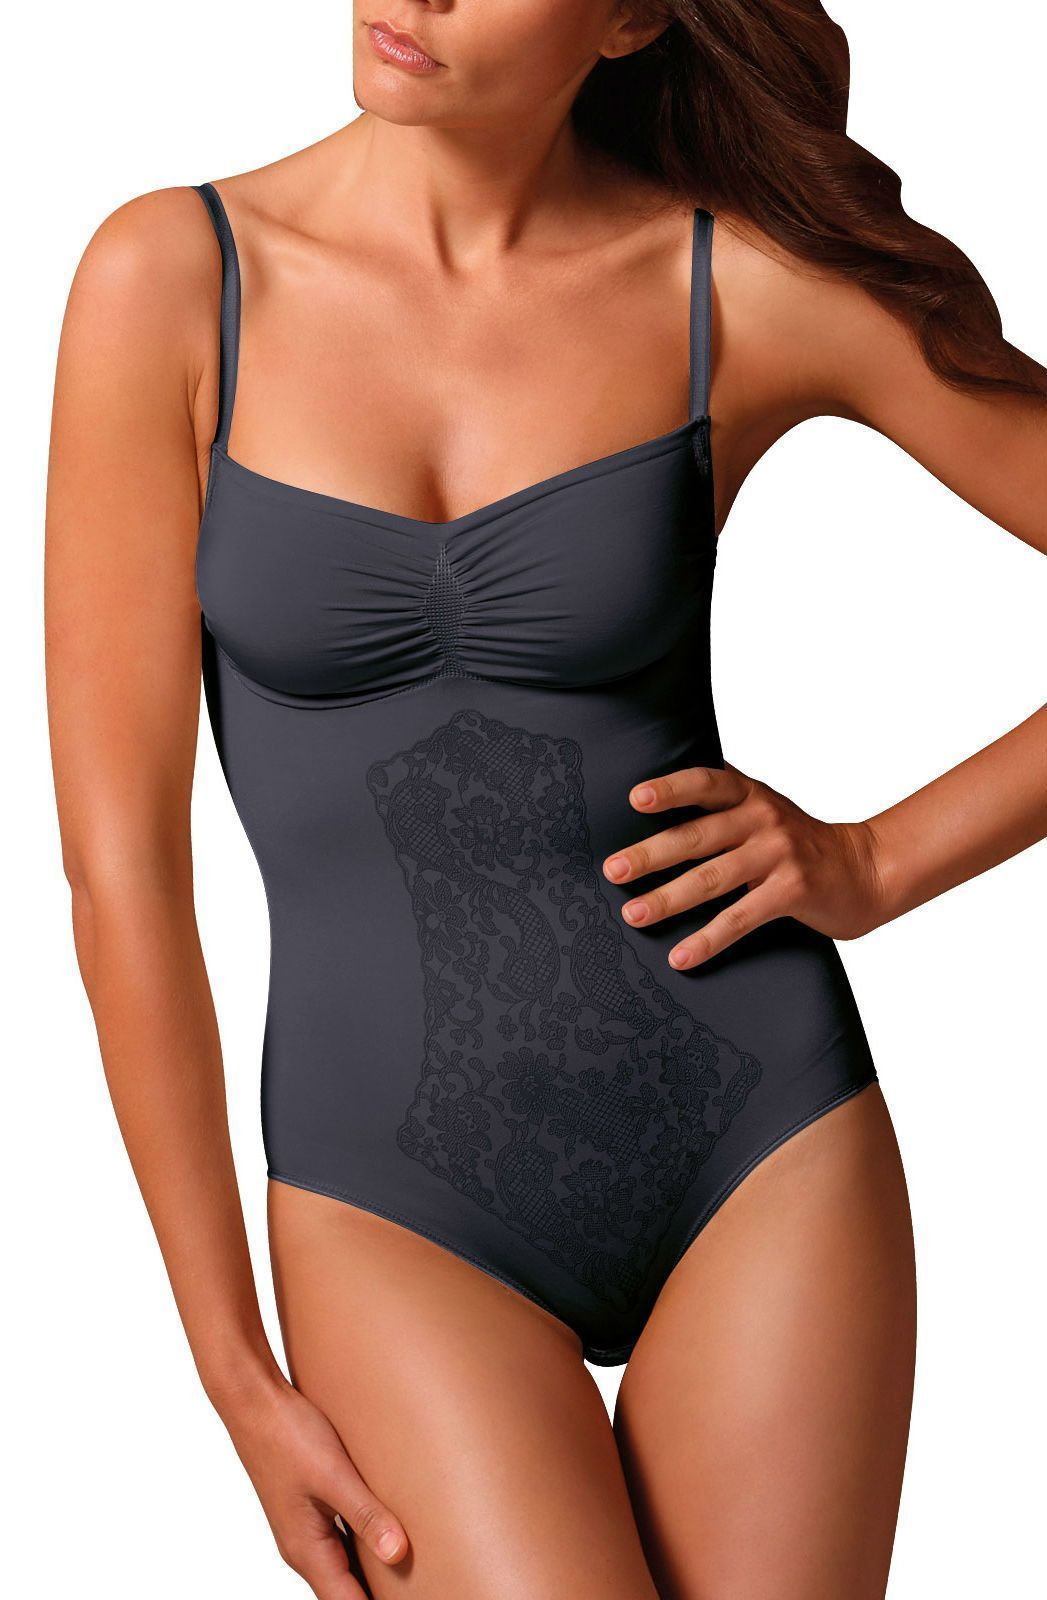 control body body lingerie UK 10-12 / Black Black Control Bodysuit with Fine Straps & Screen Print Lace - Firm Support